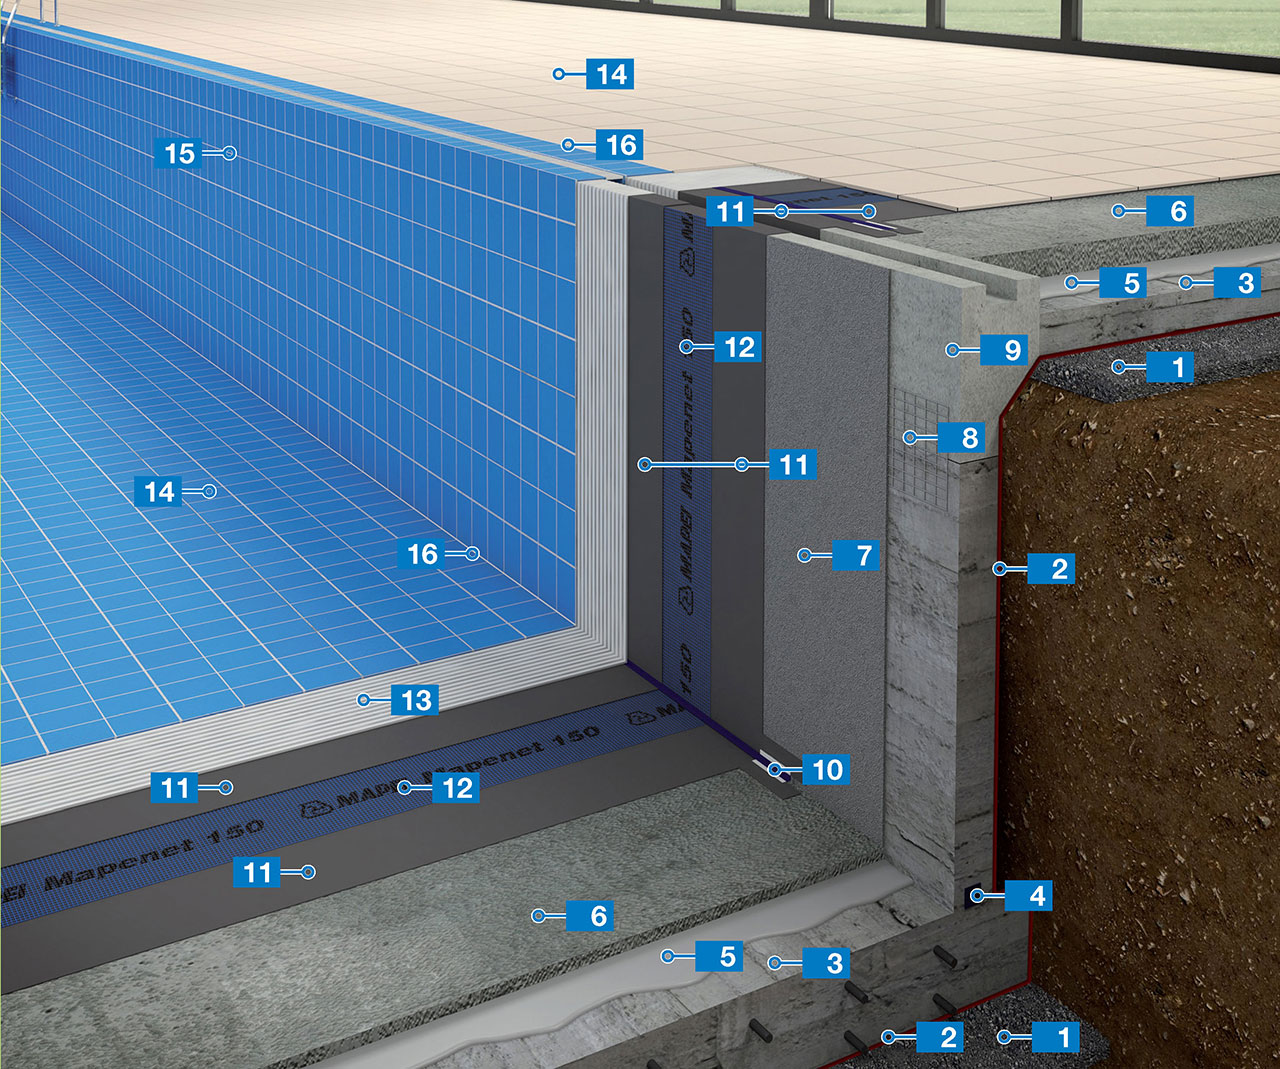 System for waterproofing and installing ceramic tiles in new system for waterproofing and installing ceramic tiles in new swimming pools mapei doublecrazyfo Gallery